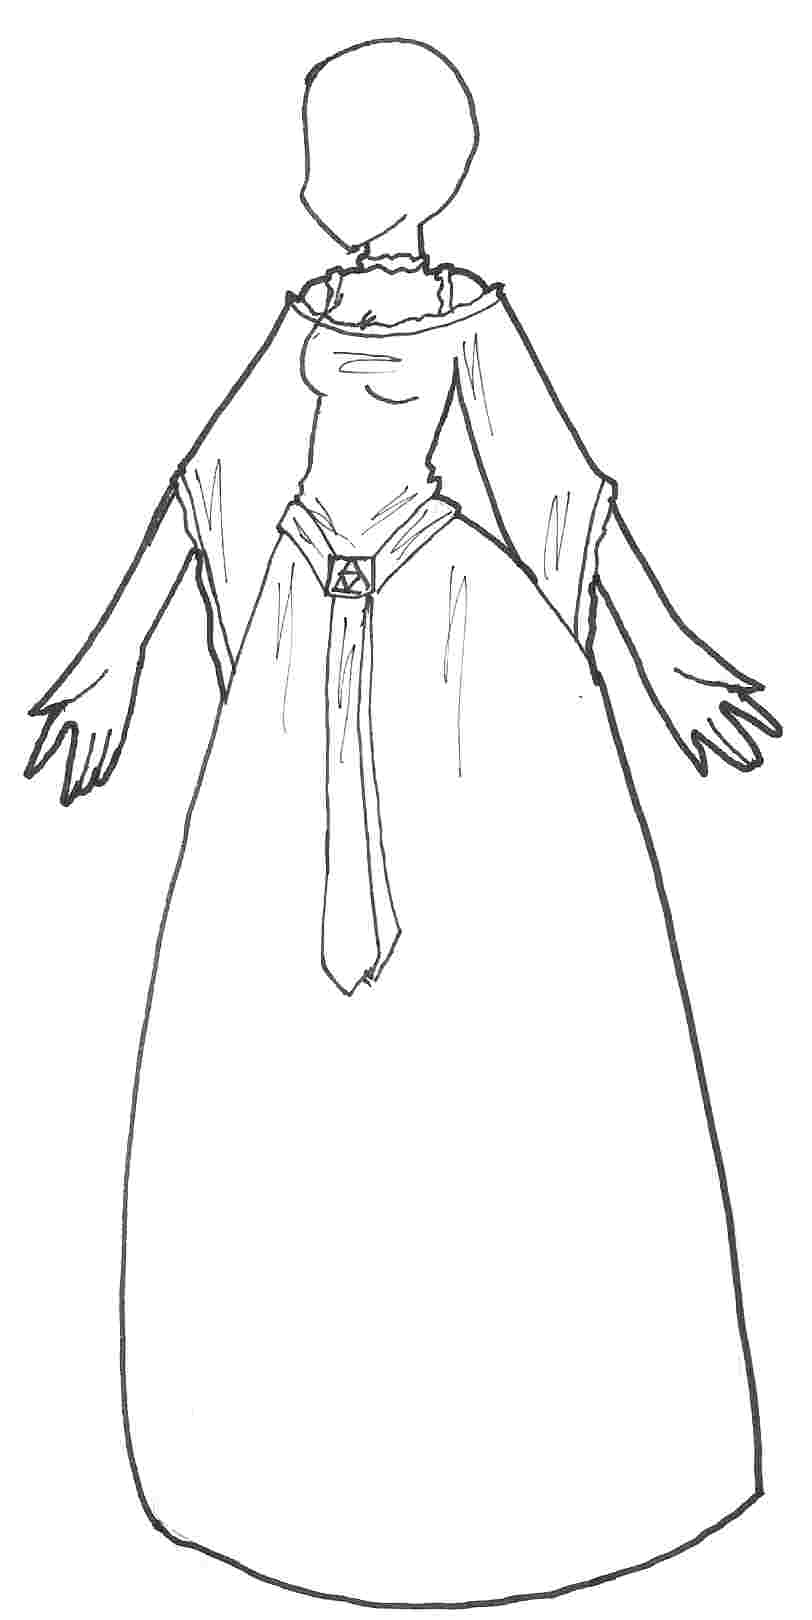 dress outline coloring pages - photo#14